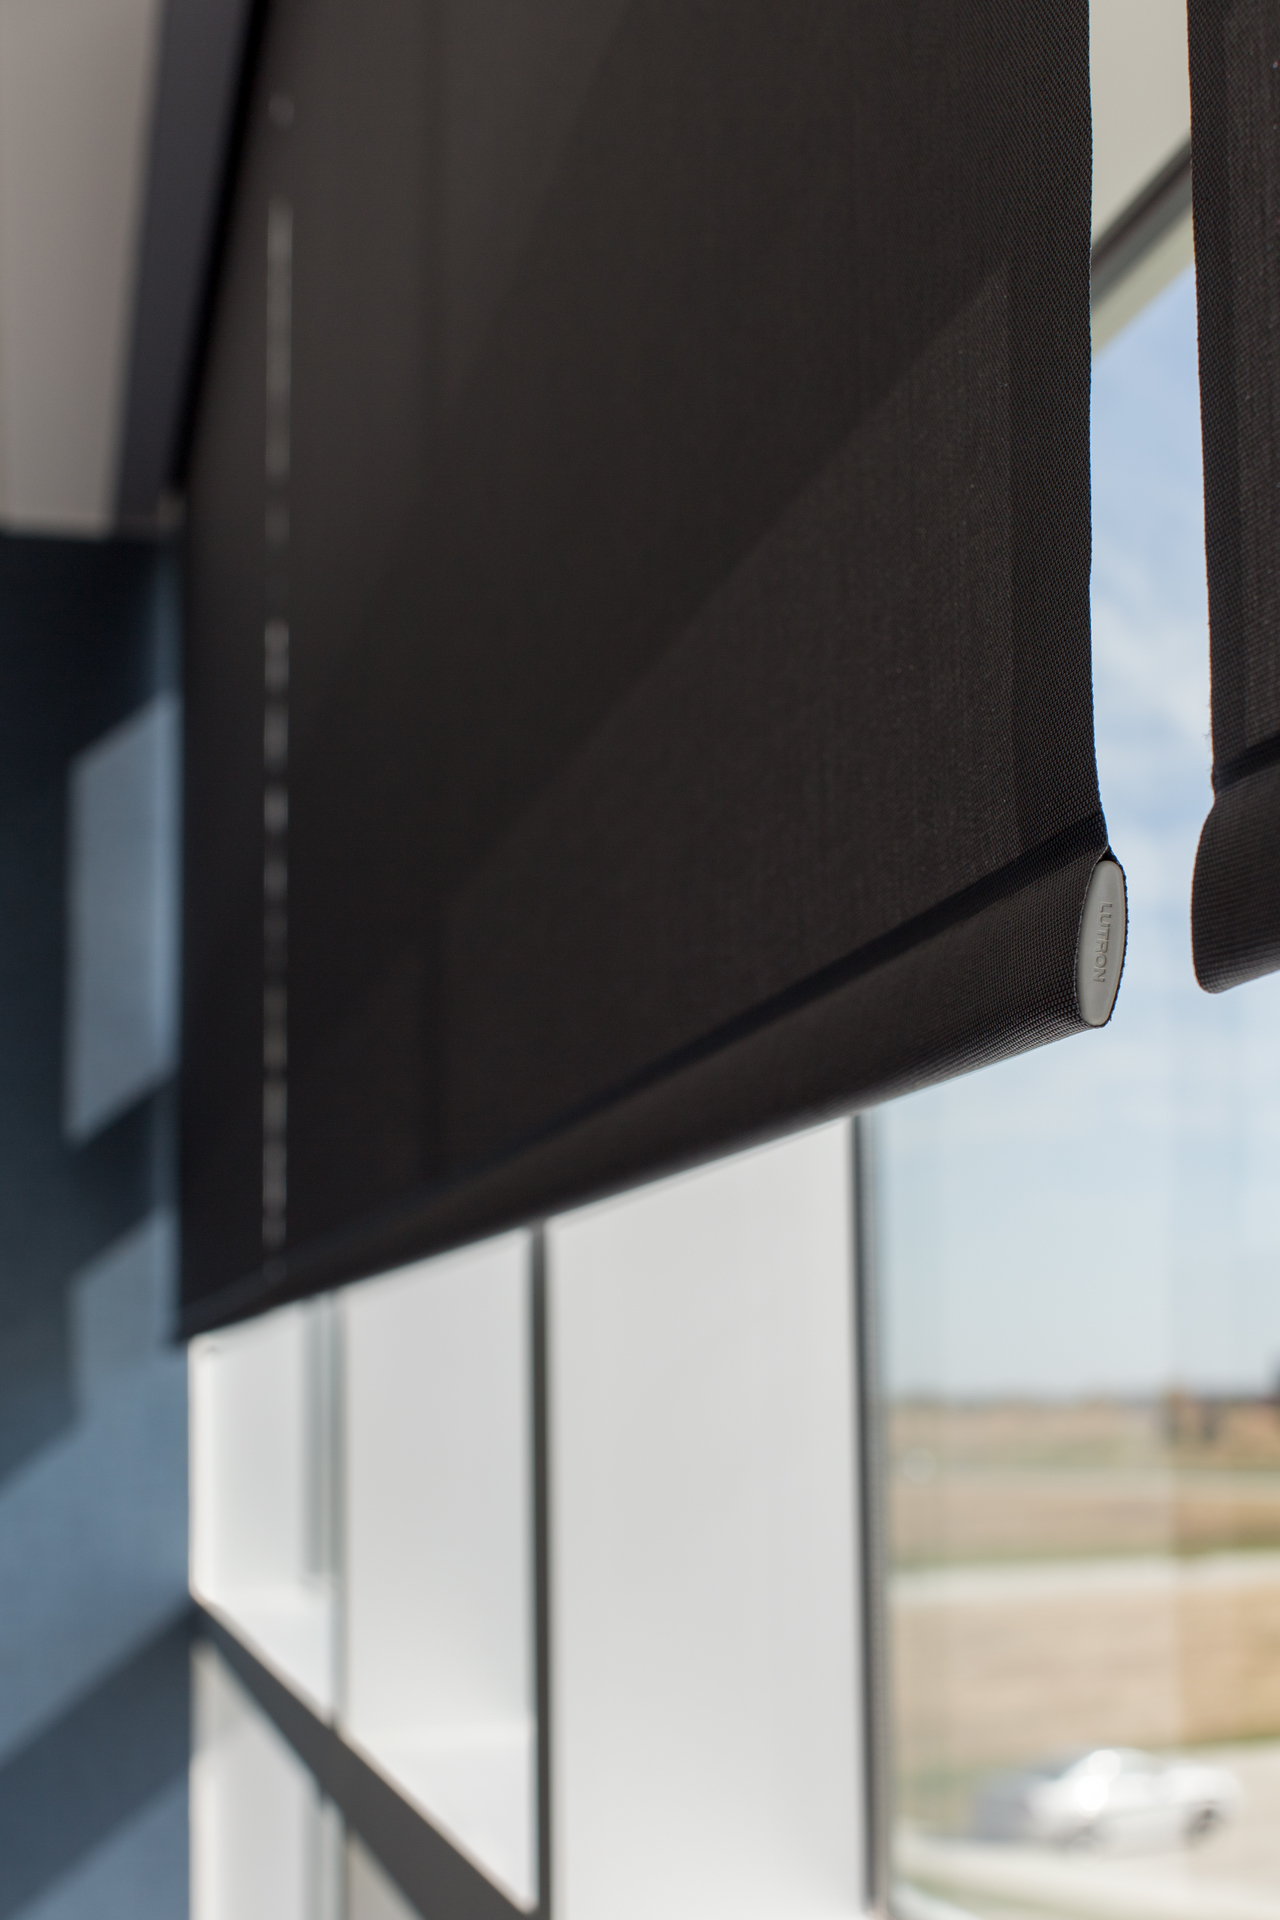 Smart shading system by Lutron. Photography by Alex Benge.